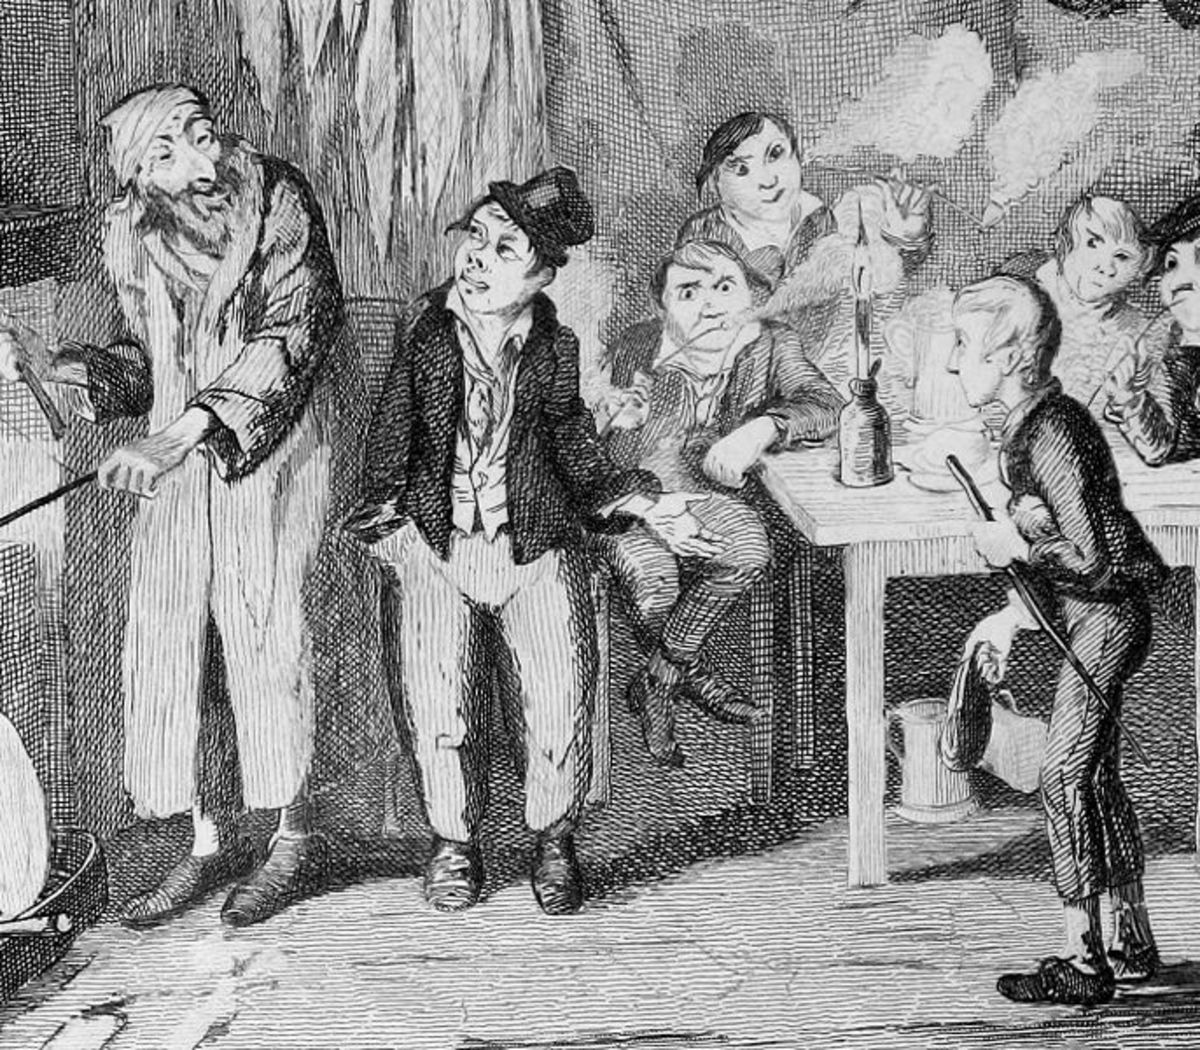 From an illustration by Cruikshank, Charles Dickens' most renowned illustrator. The fate of Oliver Twist was a common one in which guttersnipes and orphans fell into bad company.